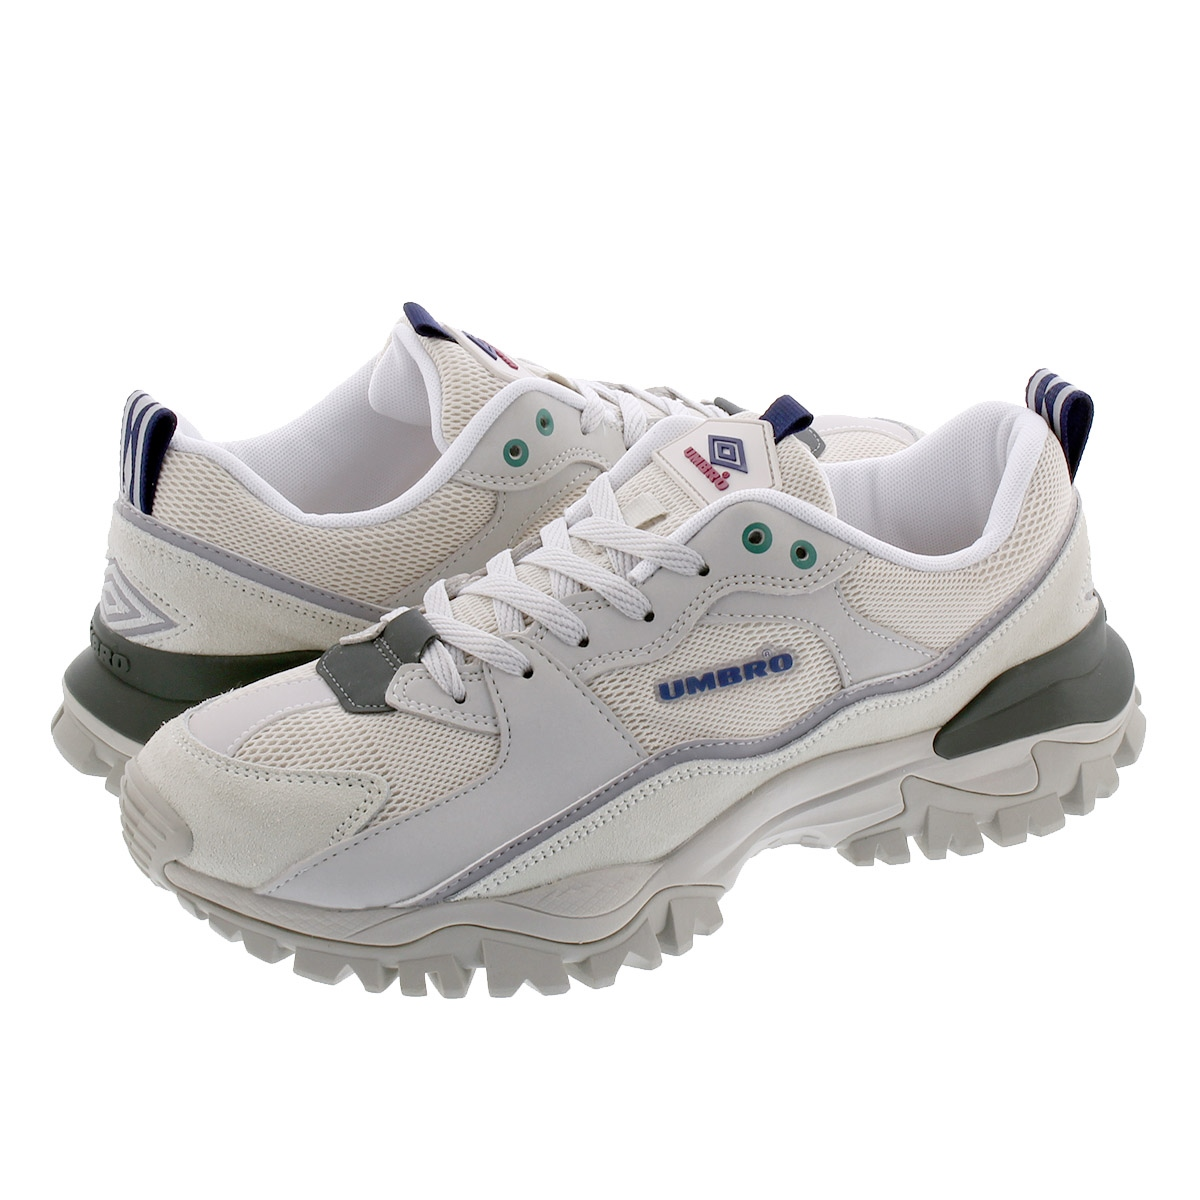 UMBRO BUMPY EARTH アンブロ バンピー アース WHITE/GREY uy1okc01wg